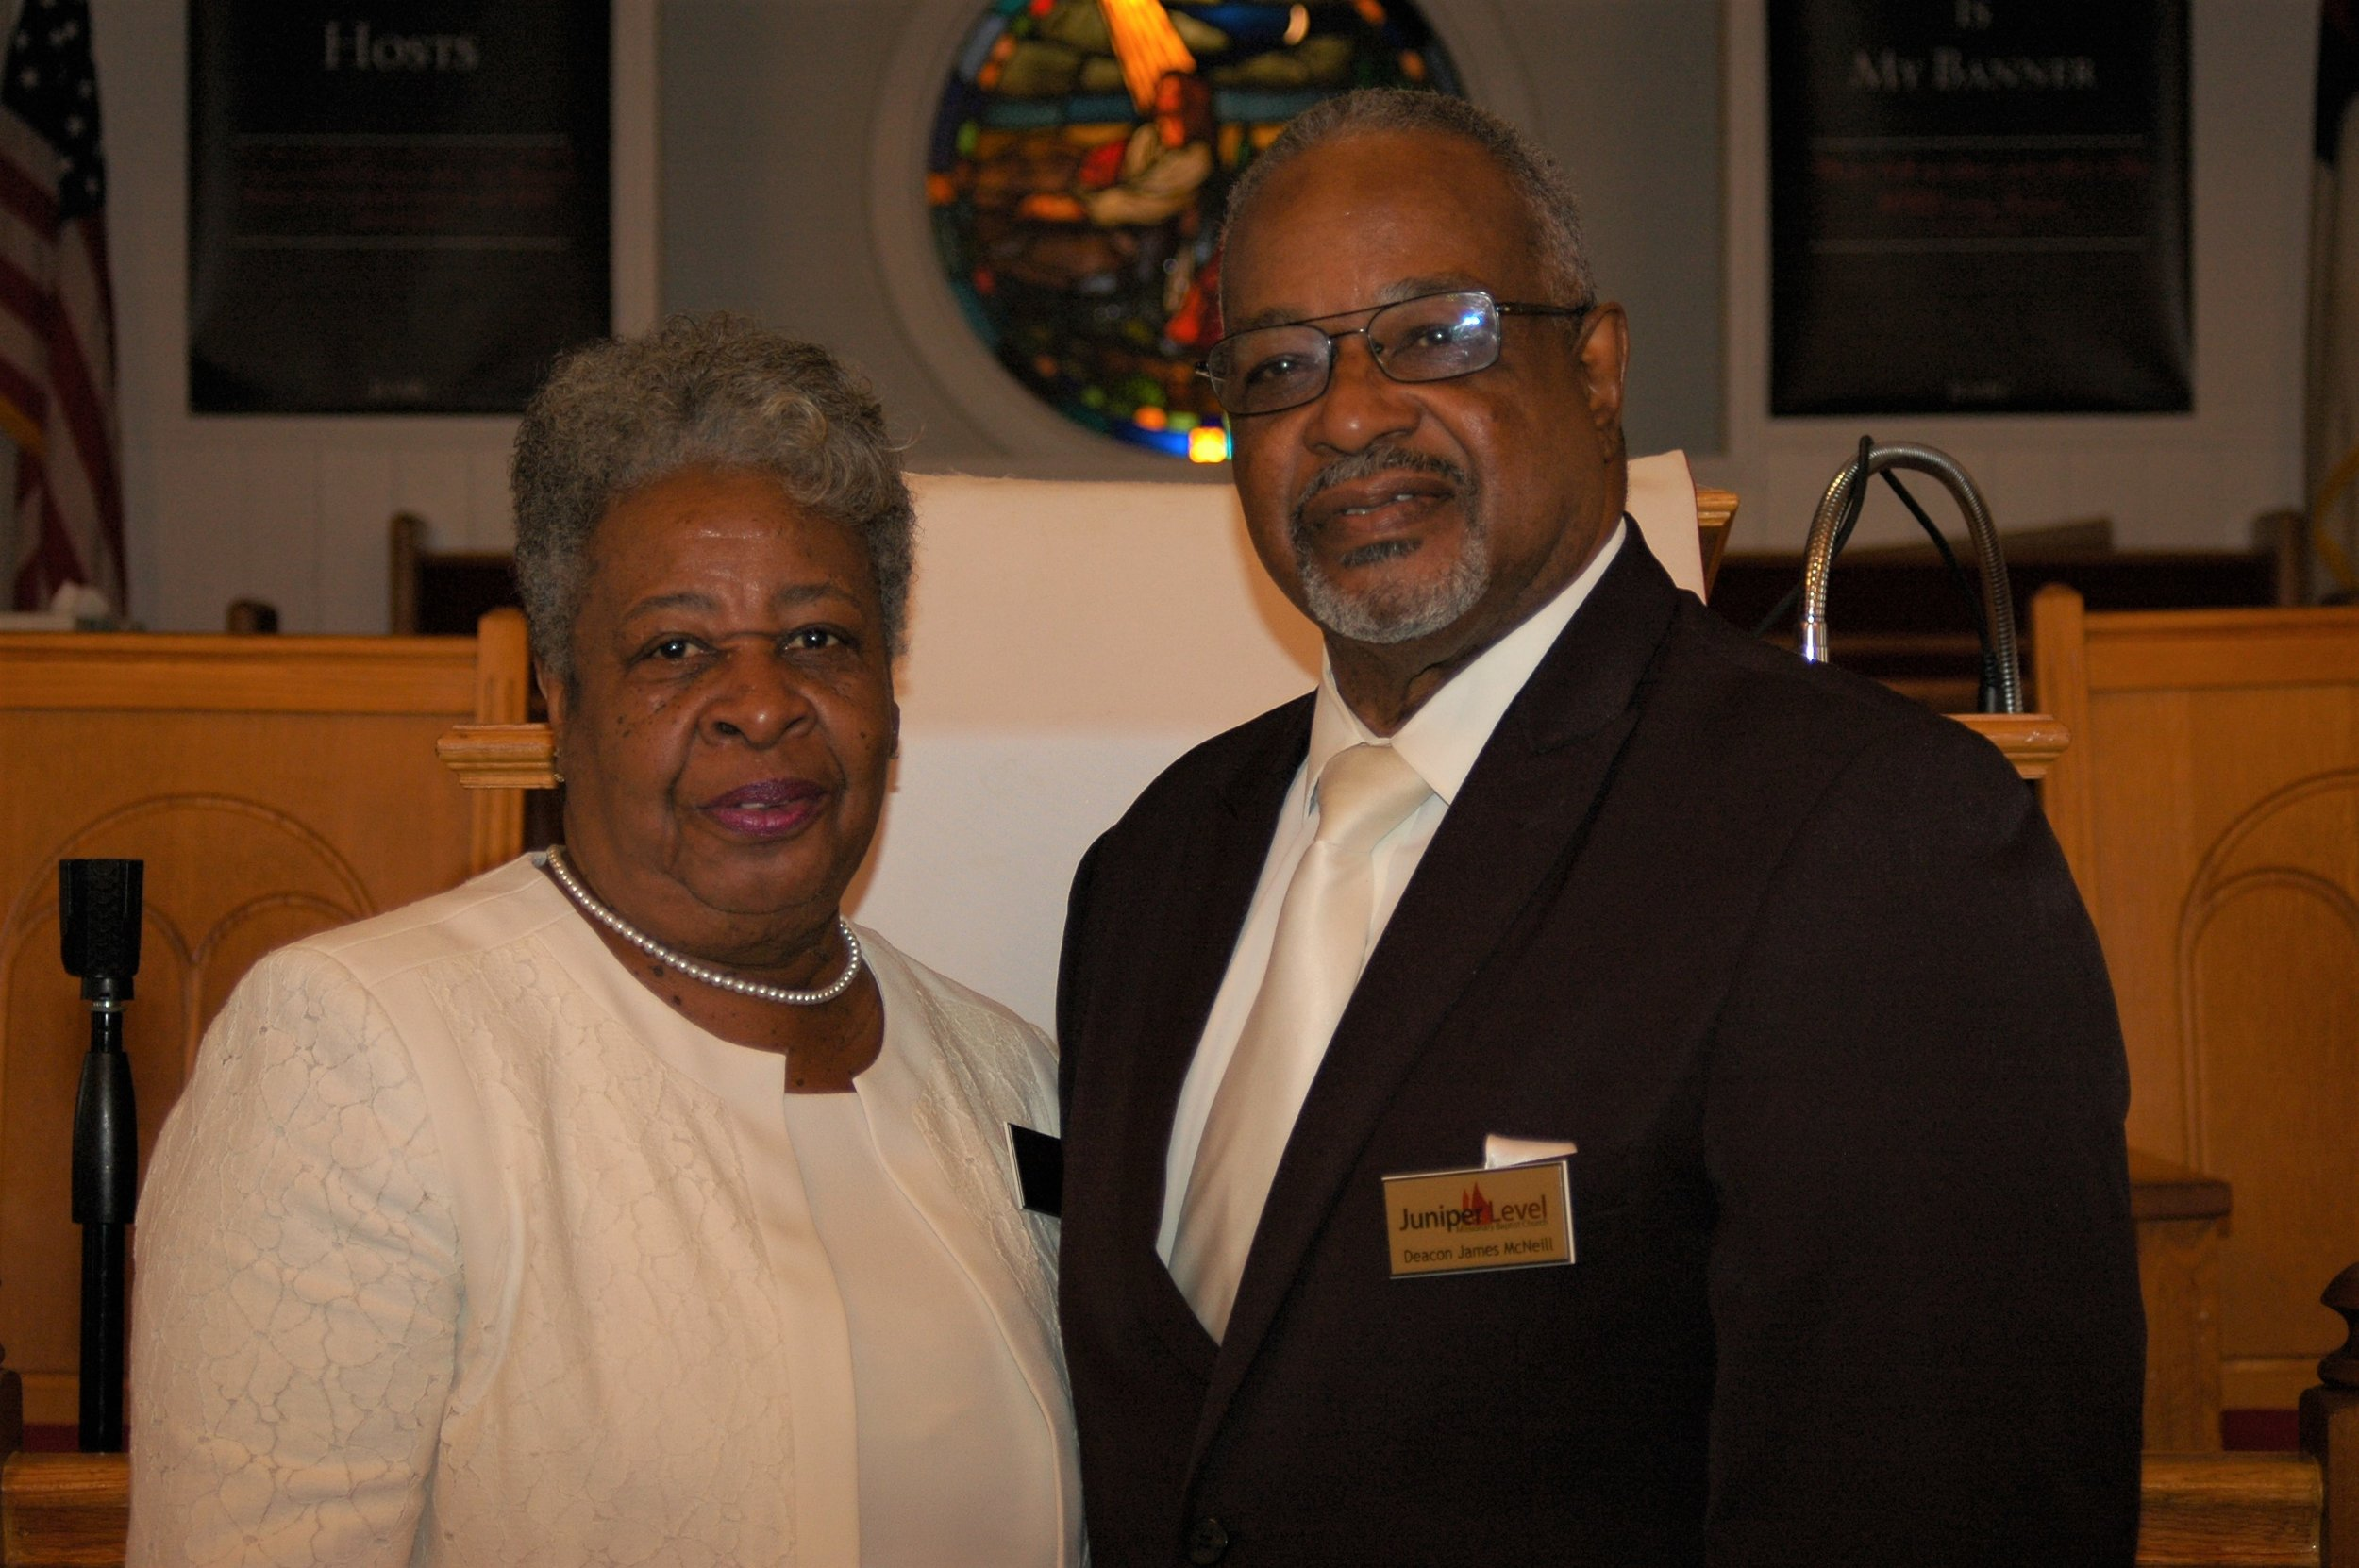 Deacon and Deaconess James and Janice McNeill